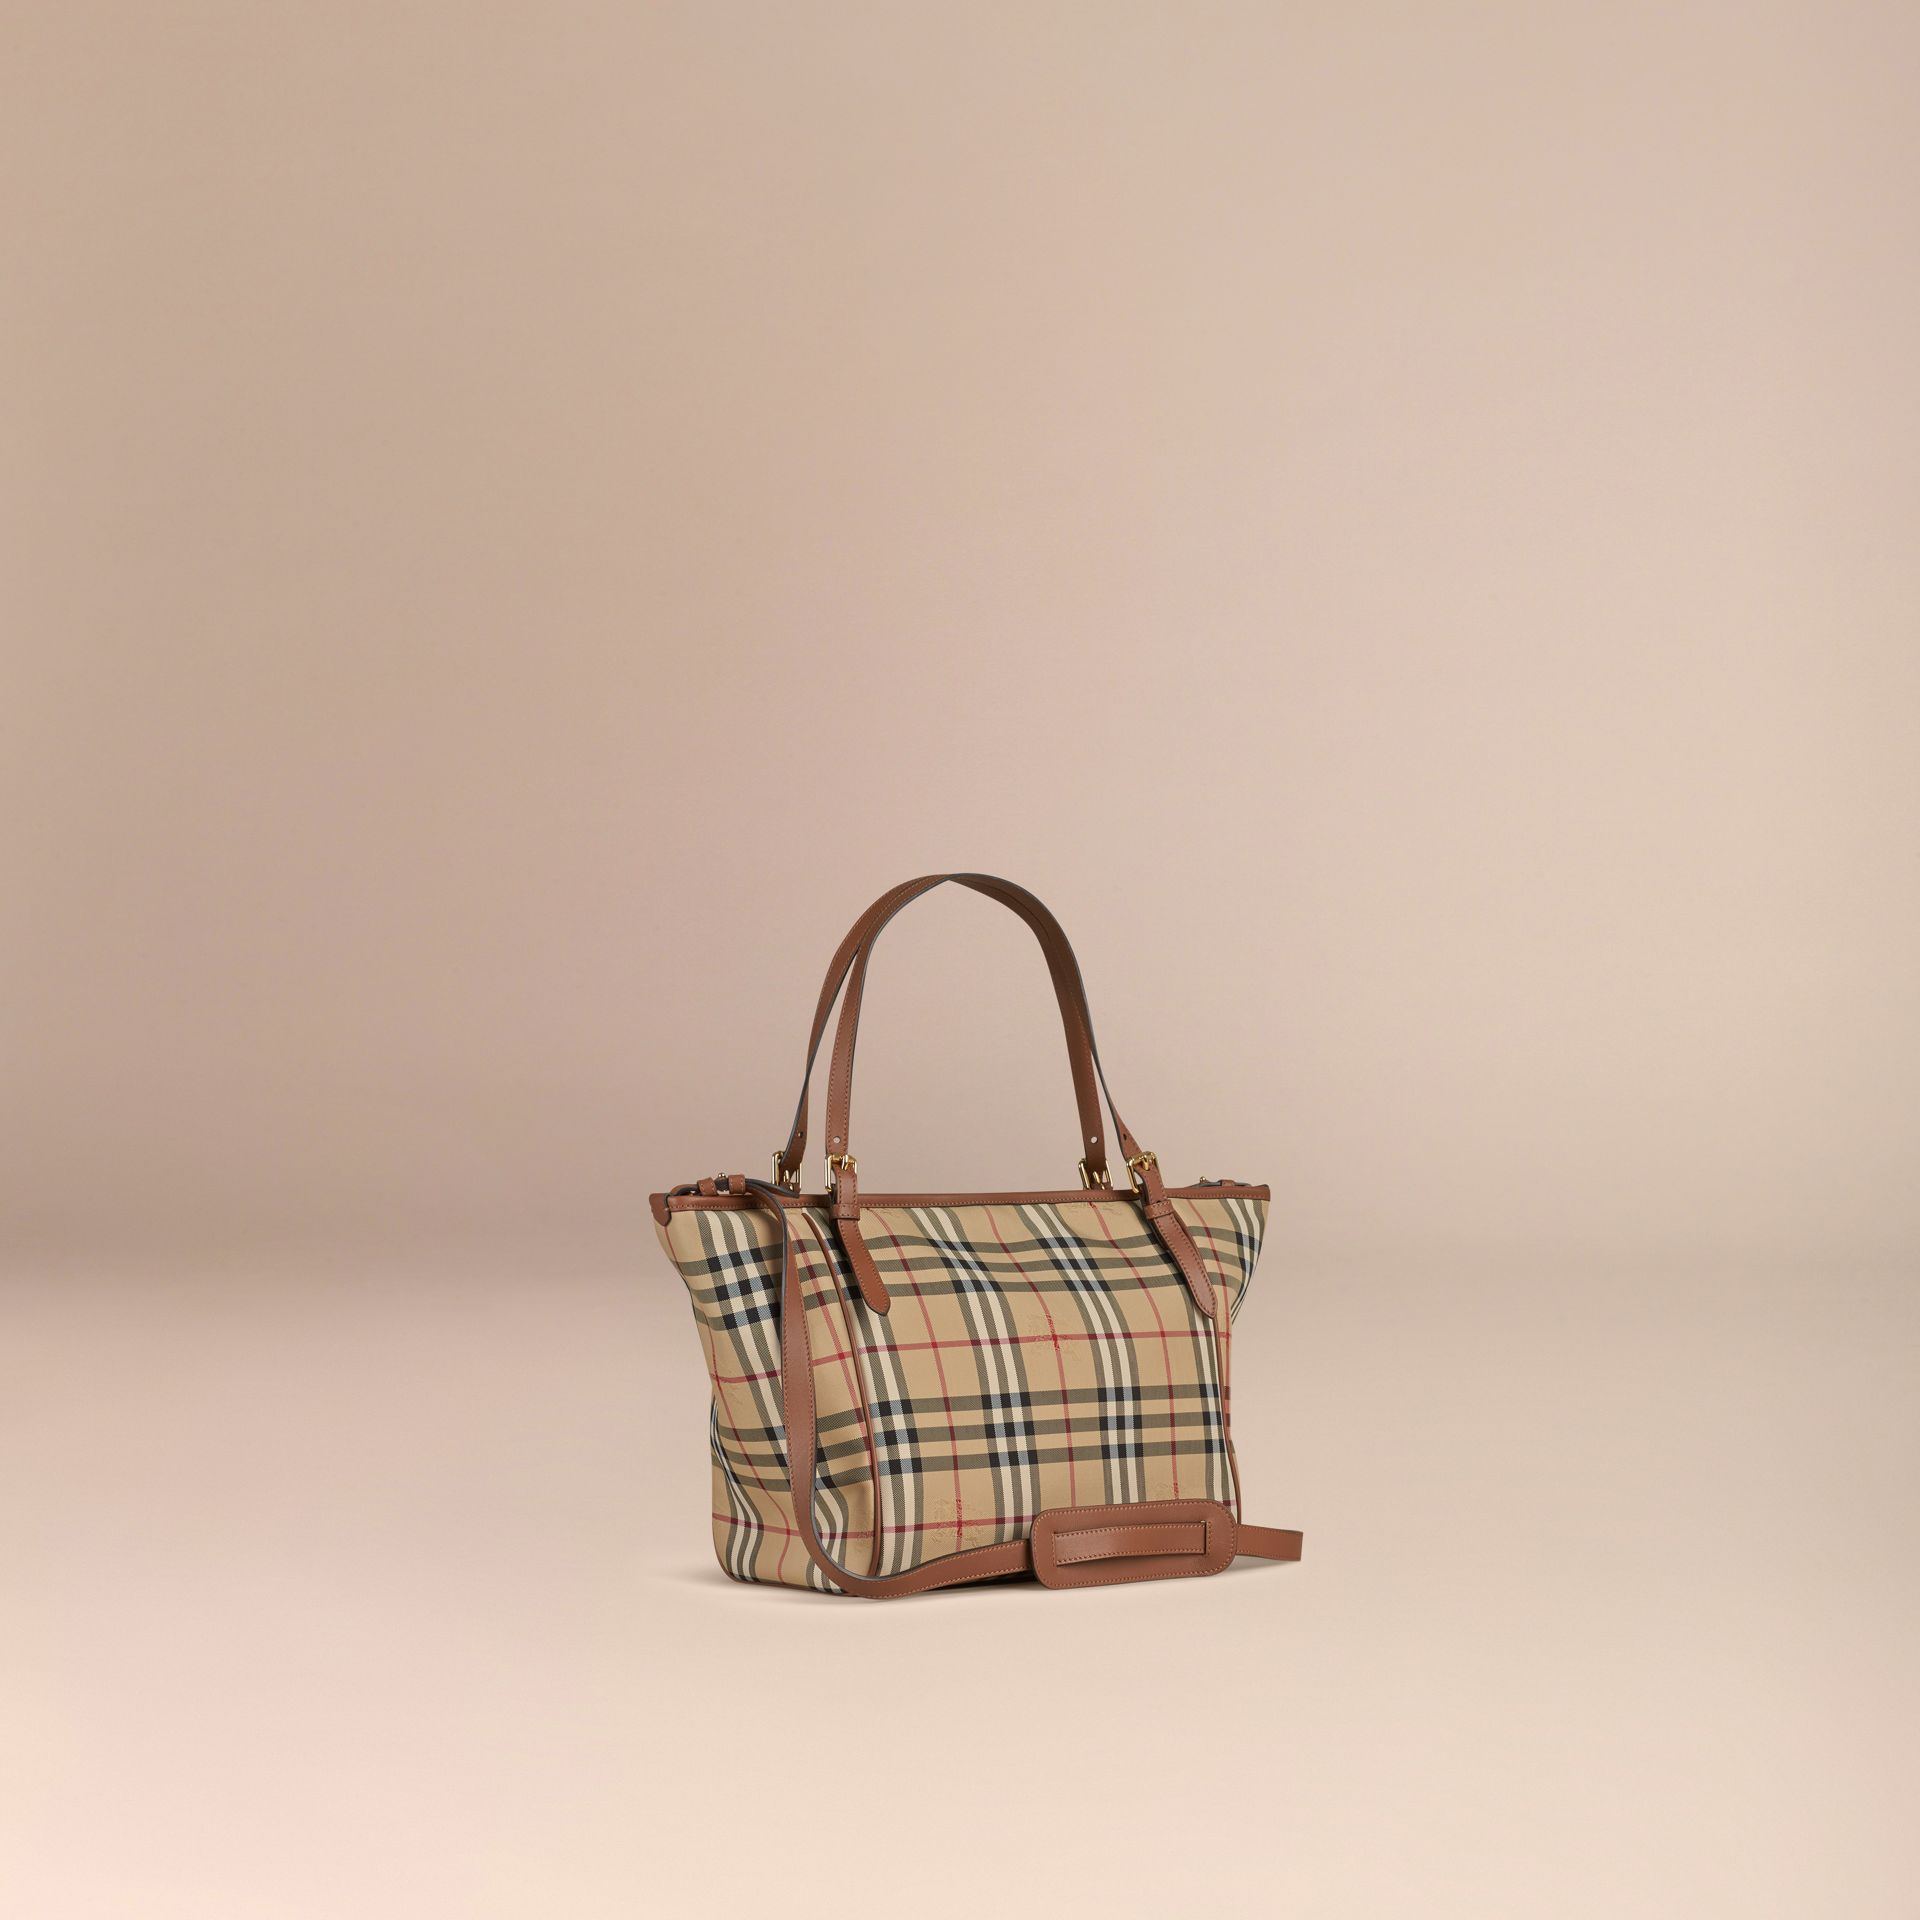 Horseferry Check Baby Changing Tote Bag in Tan | Burberry - gallery image 3